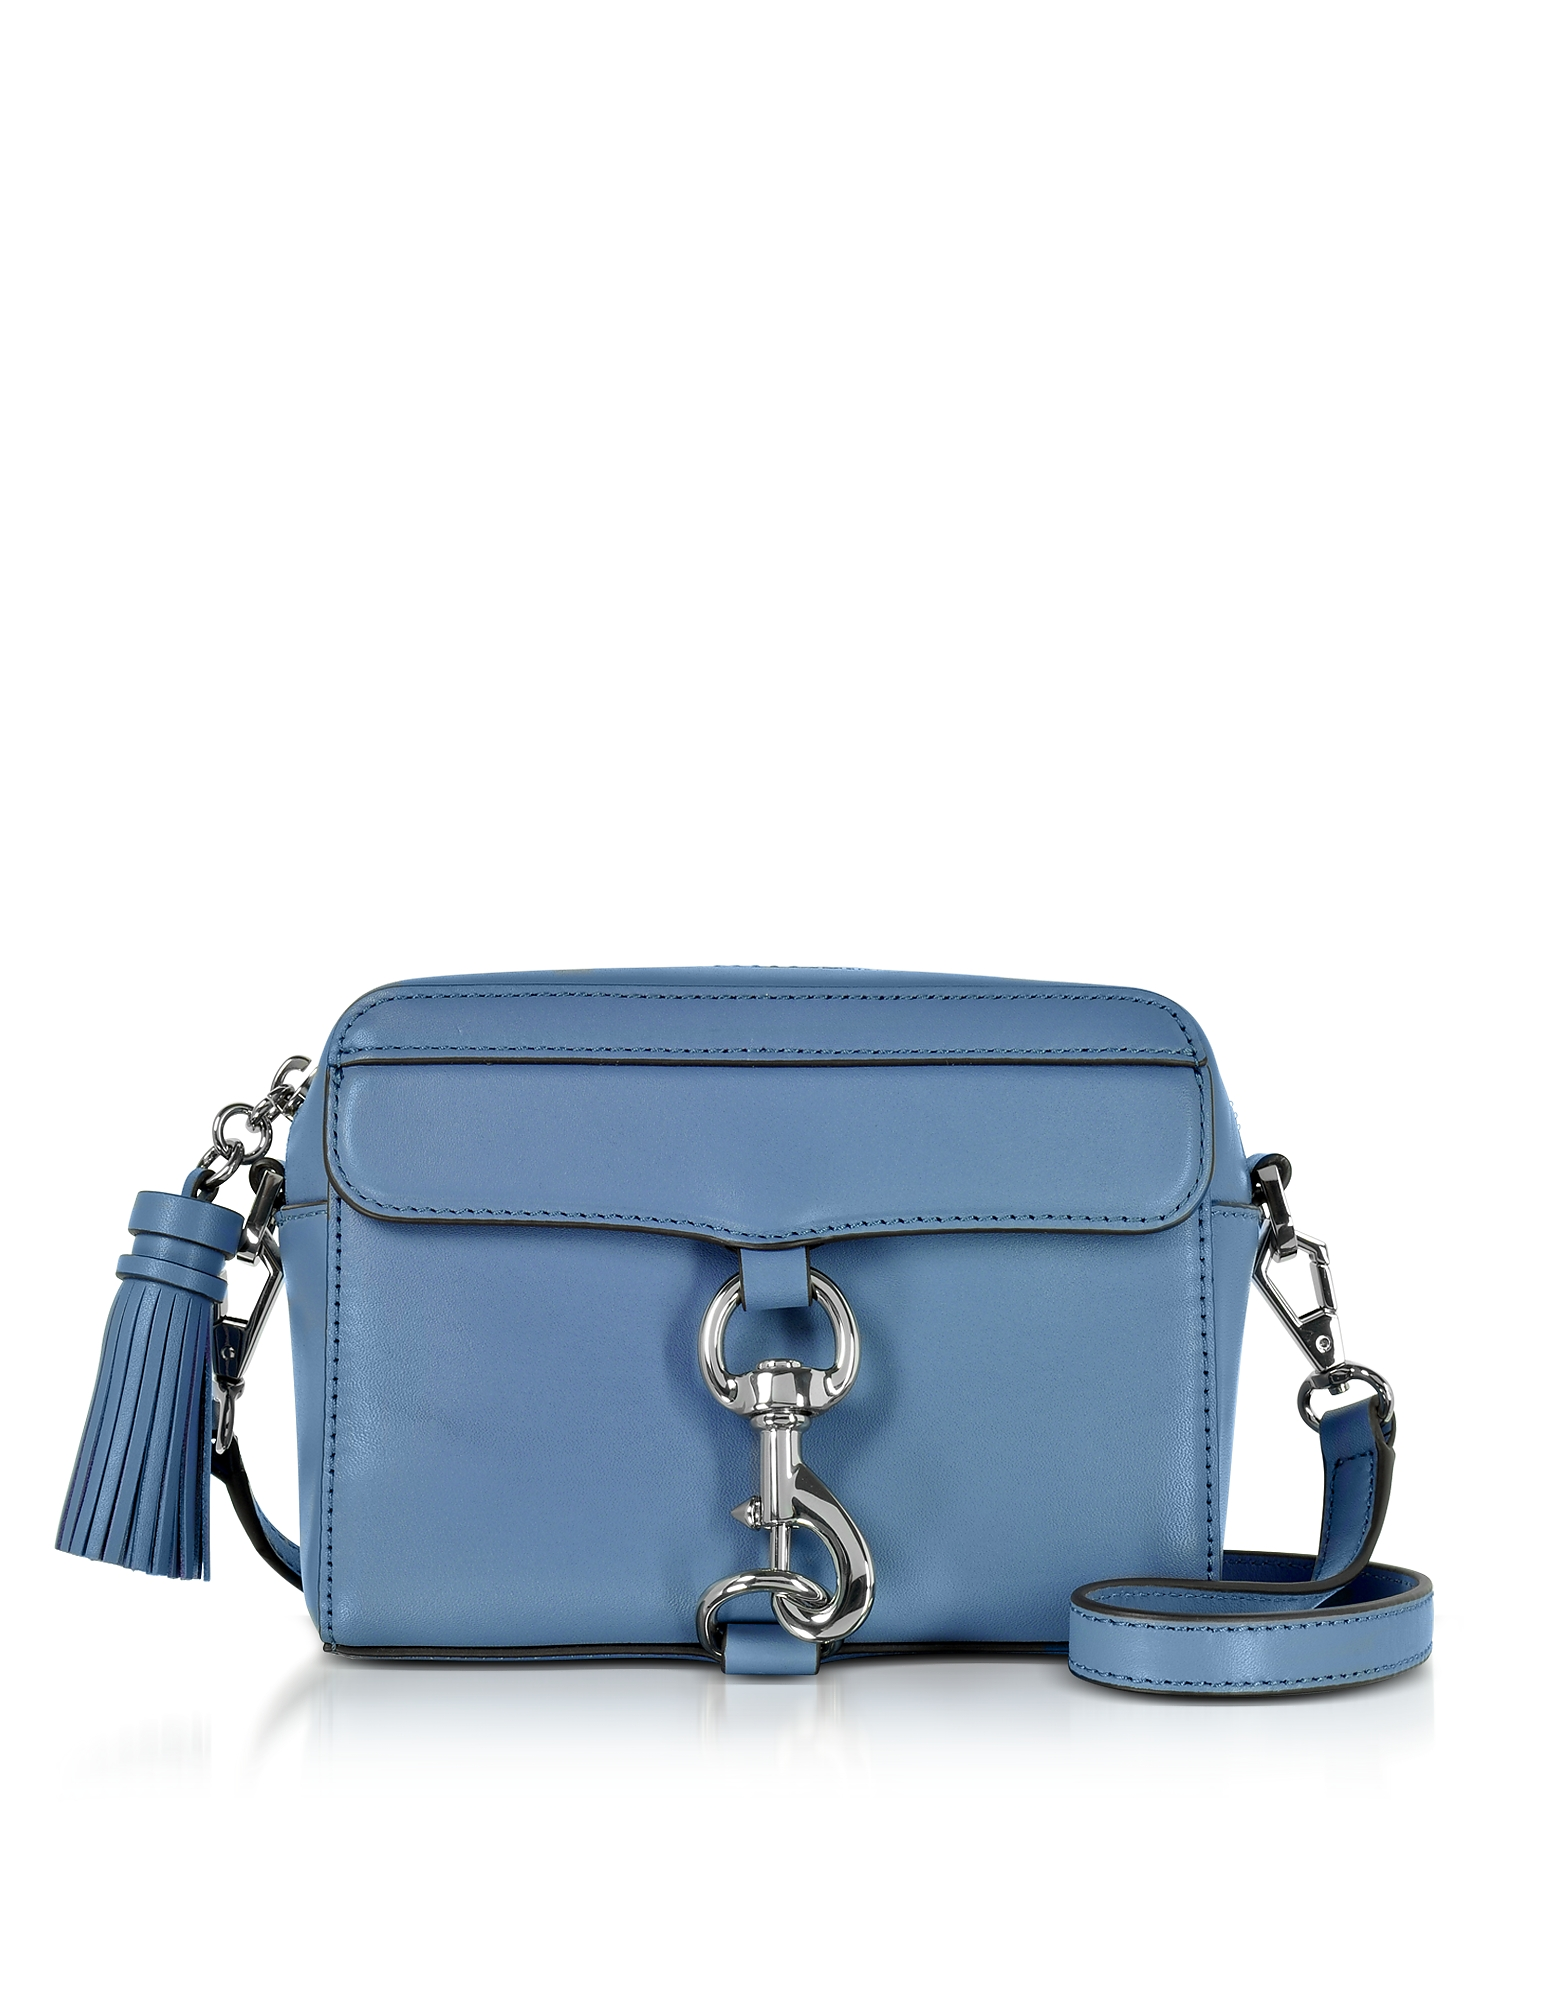 Rebecca Minkoff M.A.B. Leather Camera Bag